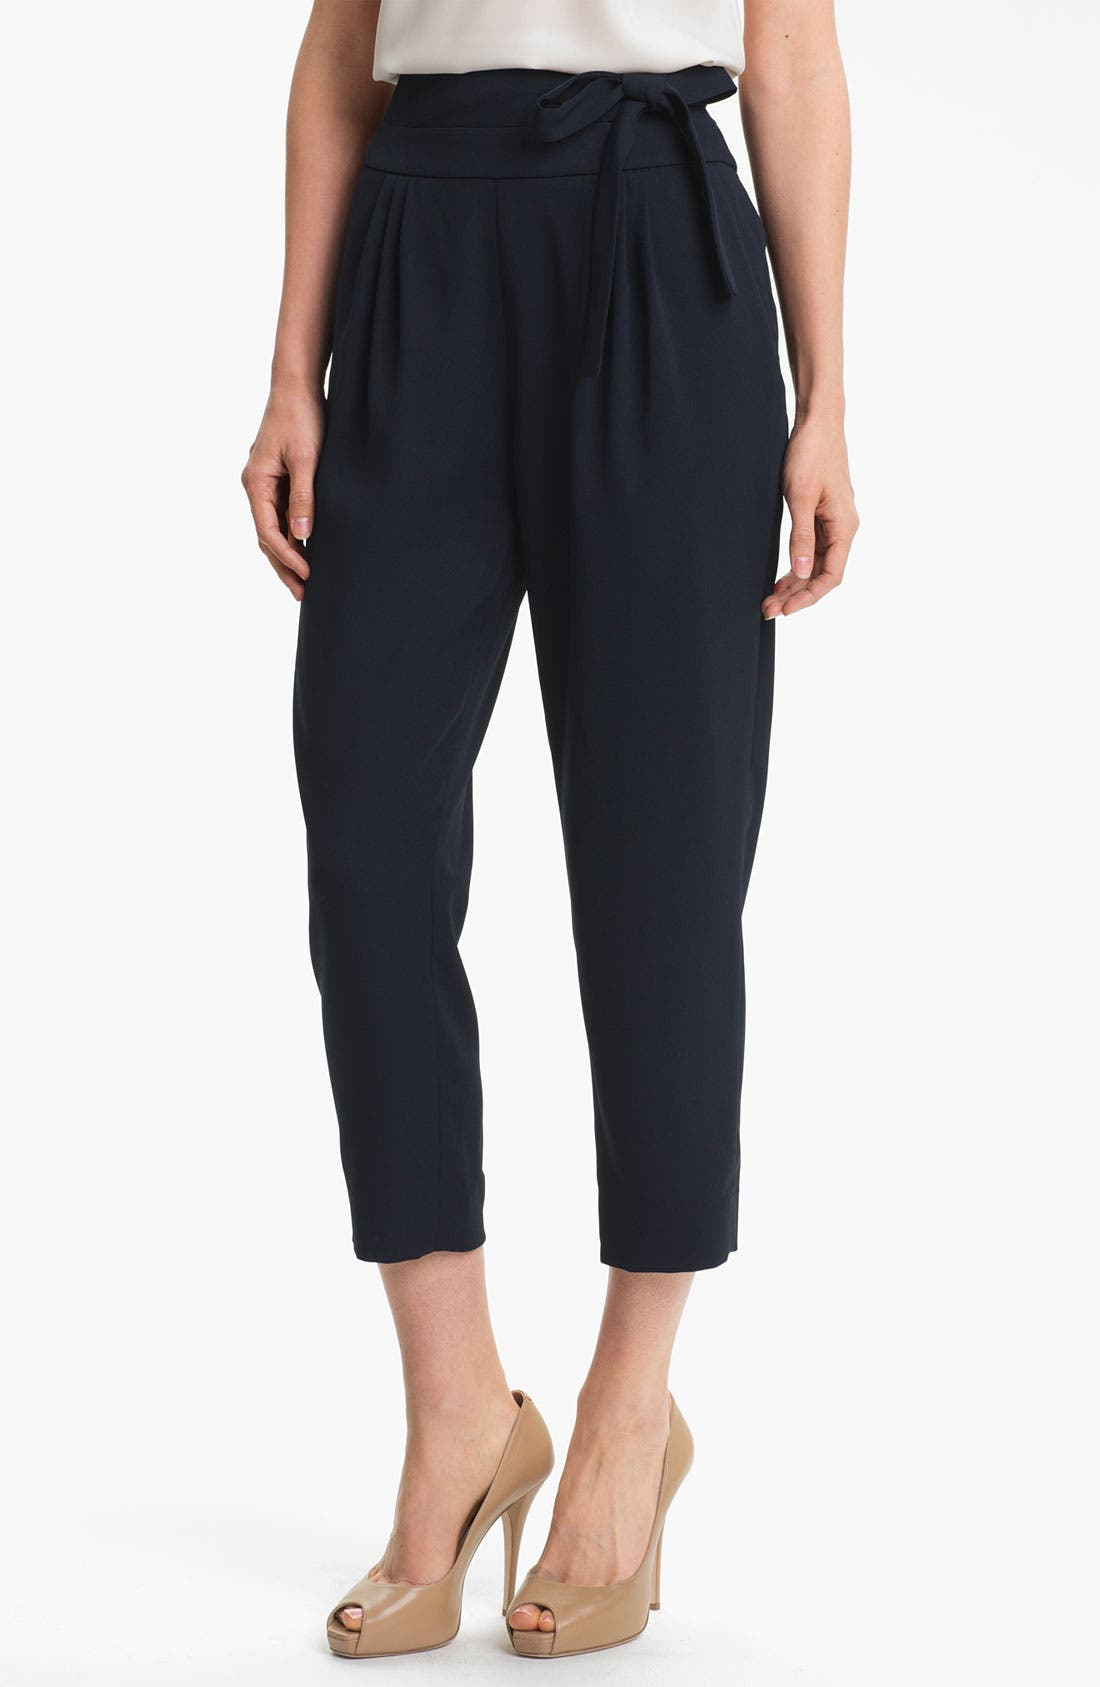 Alternate Image 1 Selected - Diane von Furstenberg 'Keaka' Capri Pants